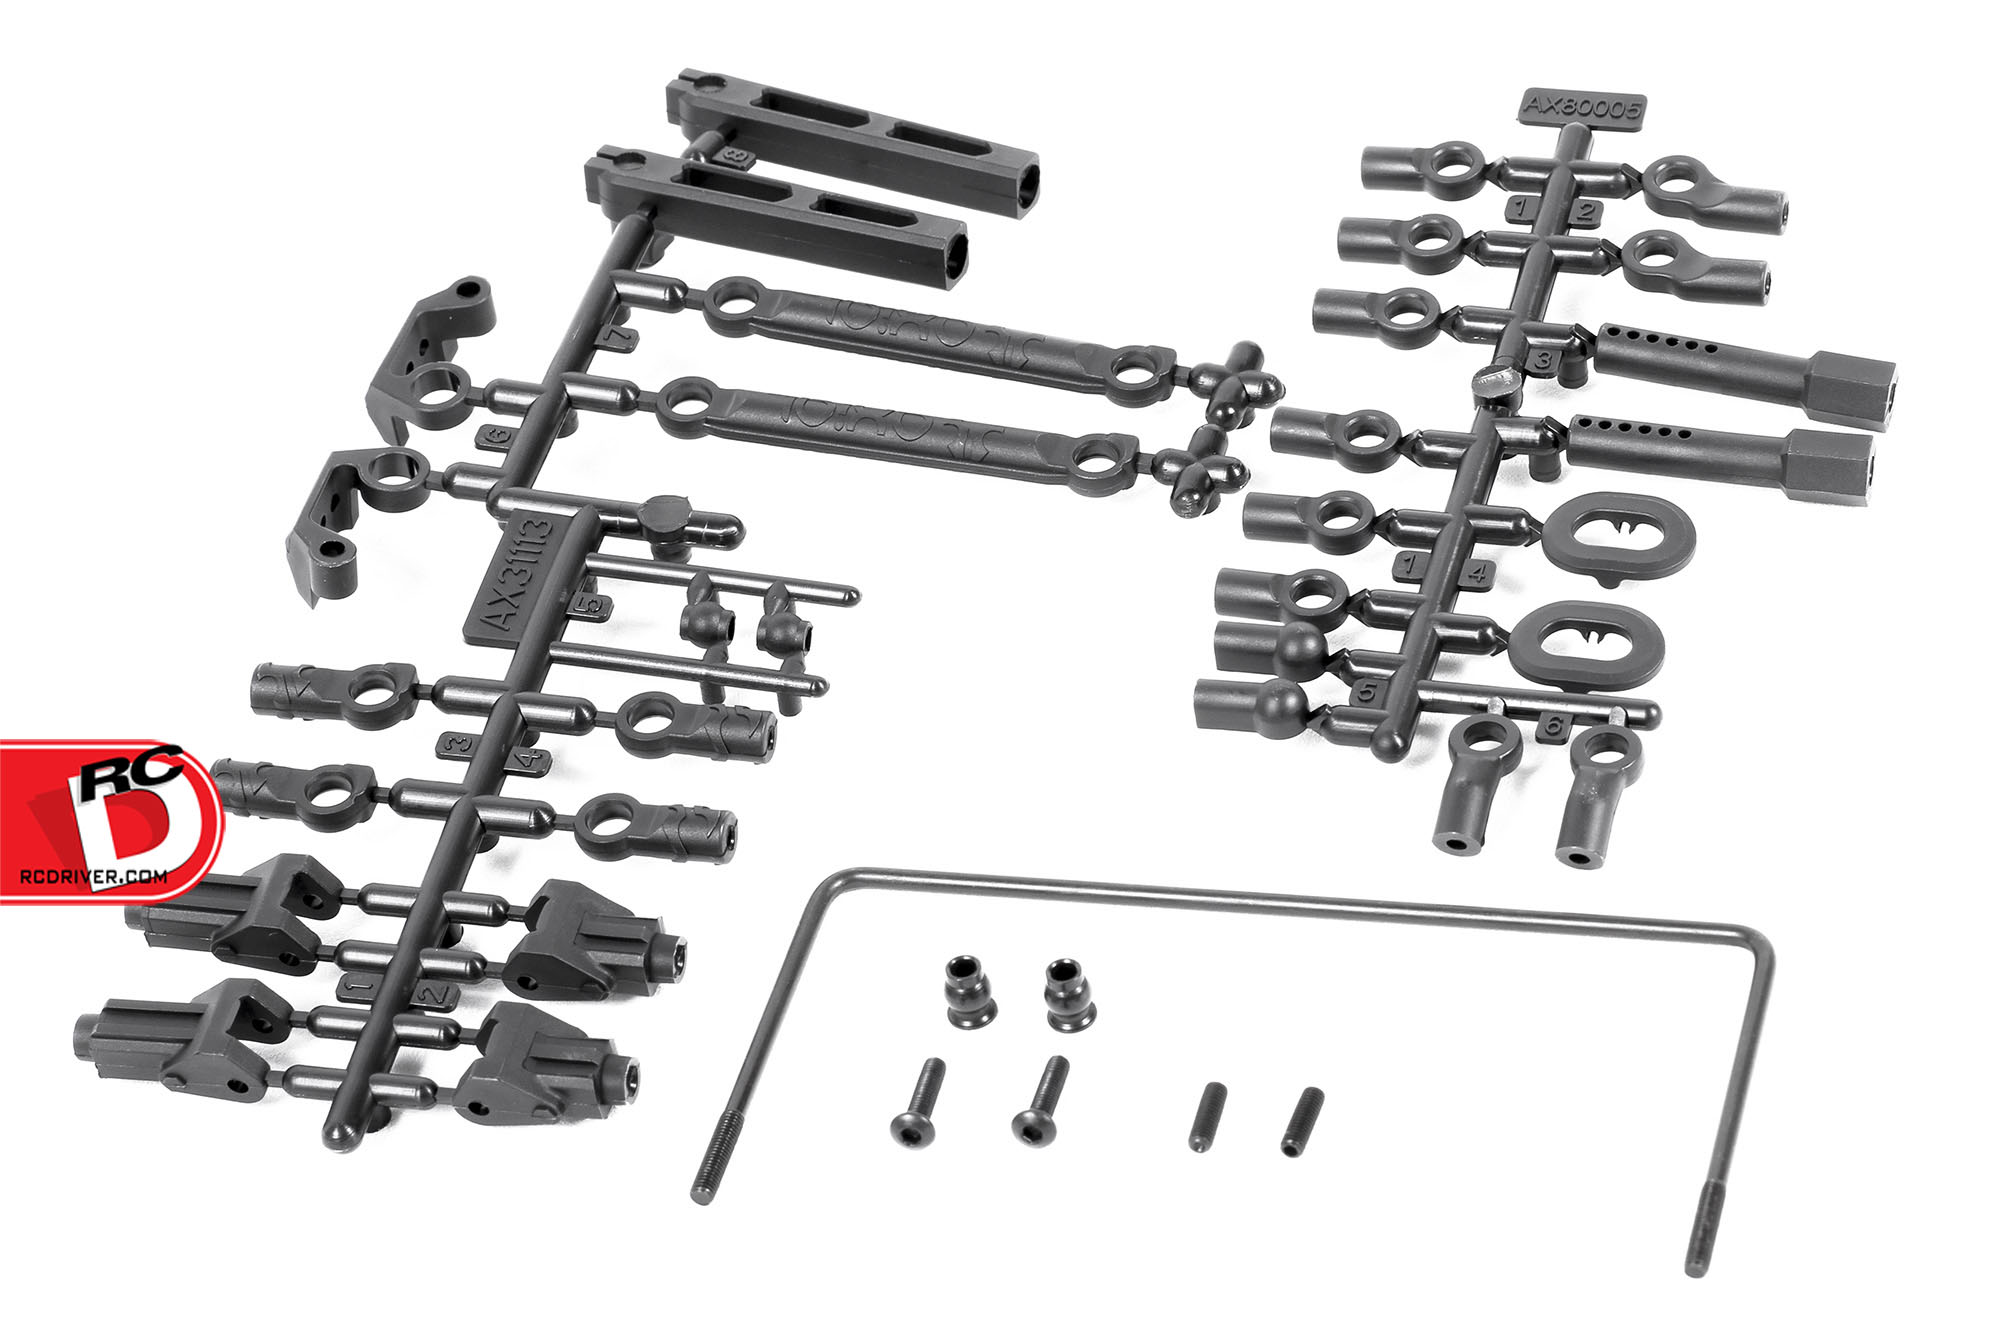 RR10 Soft Rear Sway Bar Set from Axial Racing